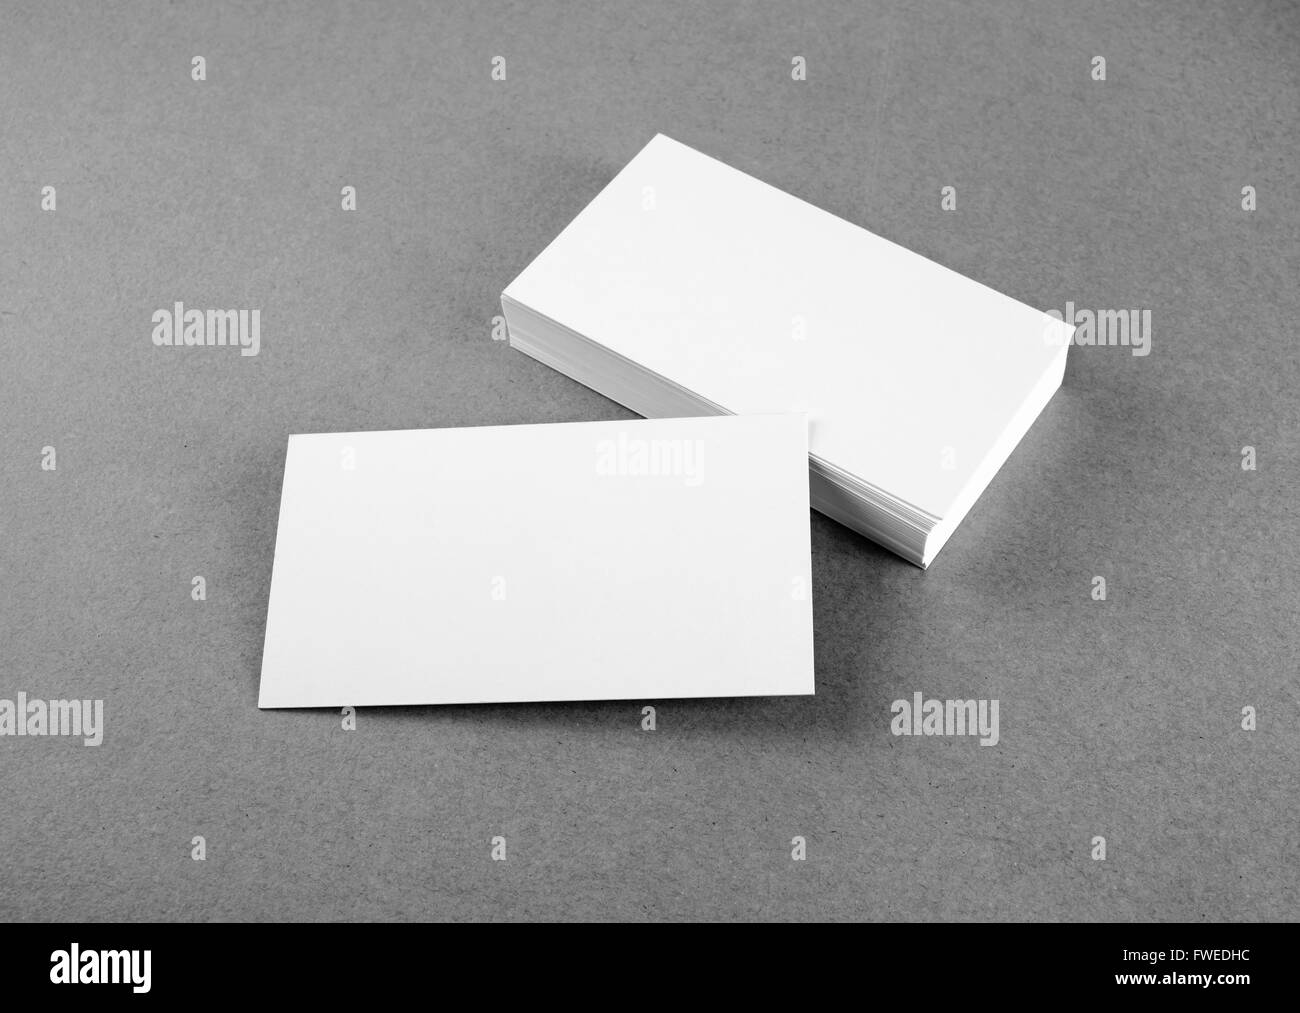 Blank Business Cards Template On Gray Background Mockup For Branding Identity Designers Black